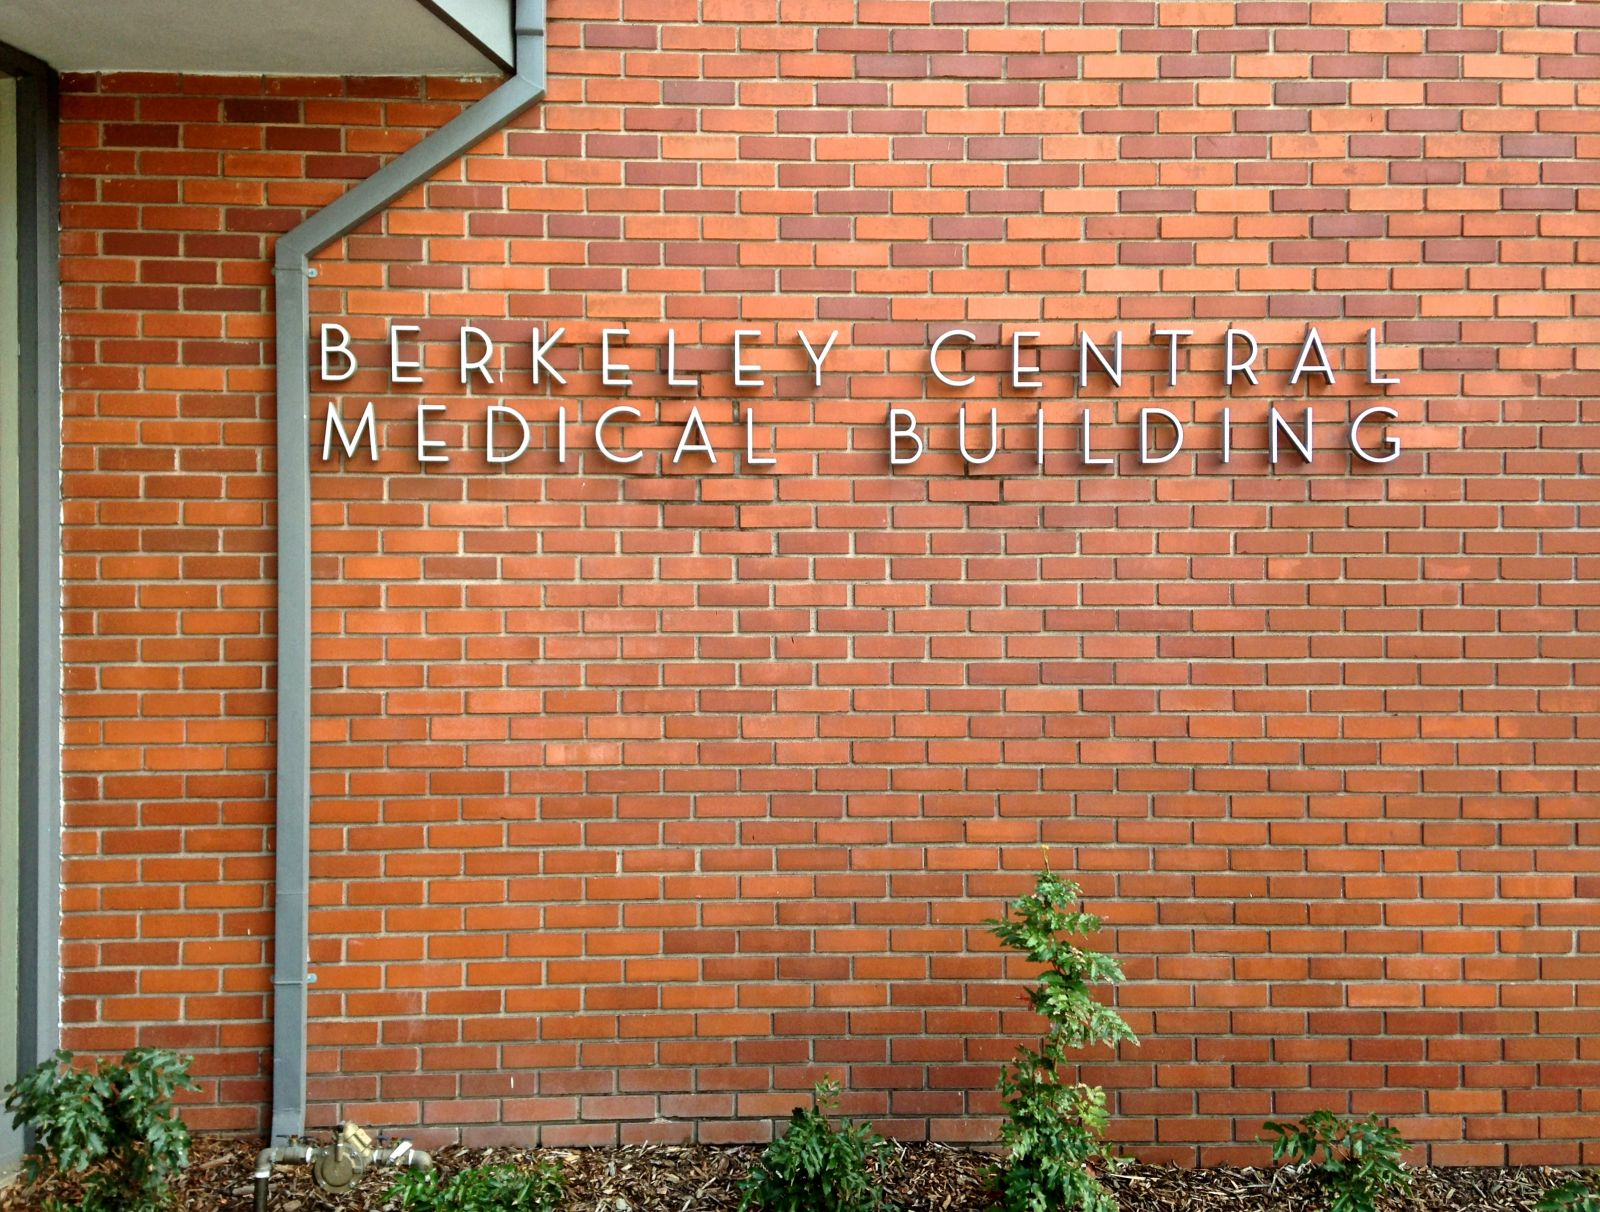 Berkeley Central Medical Building sign